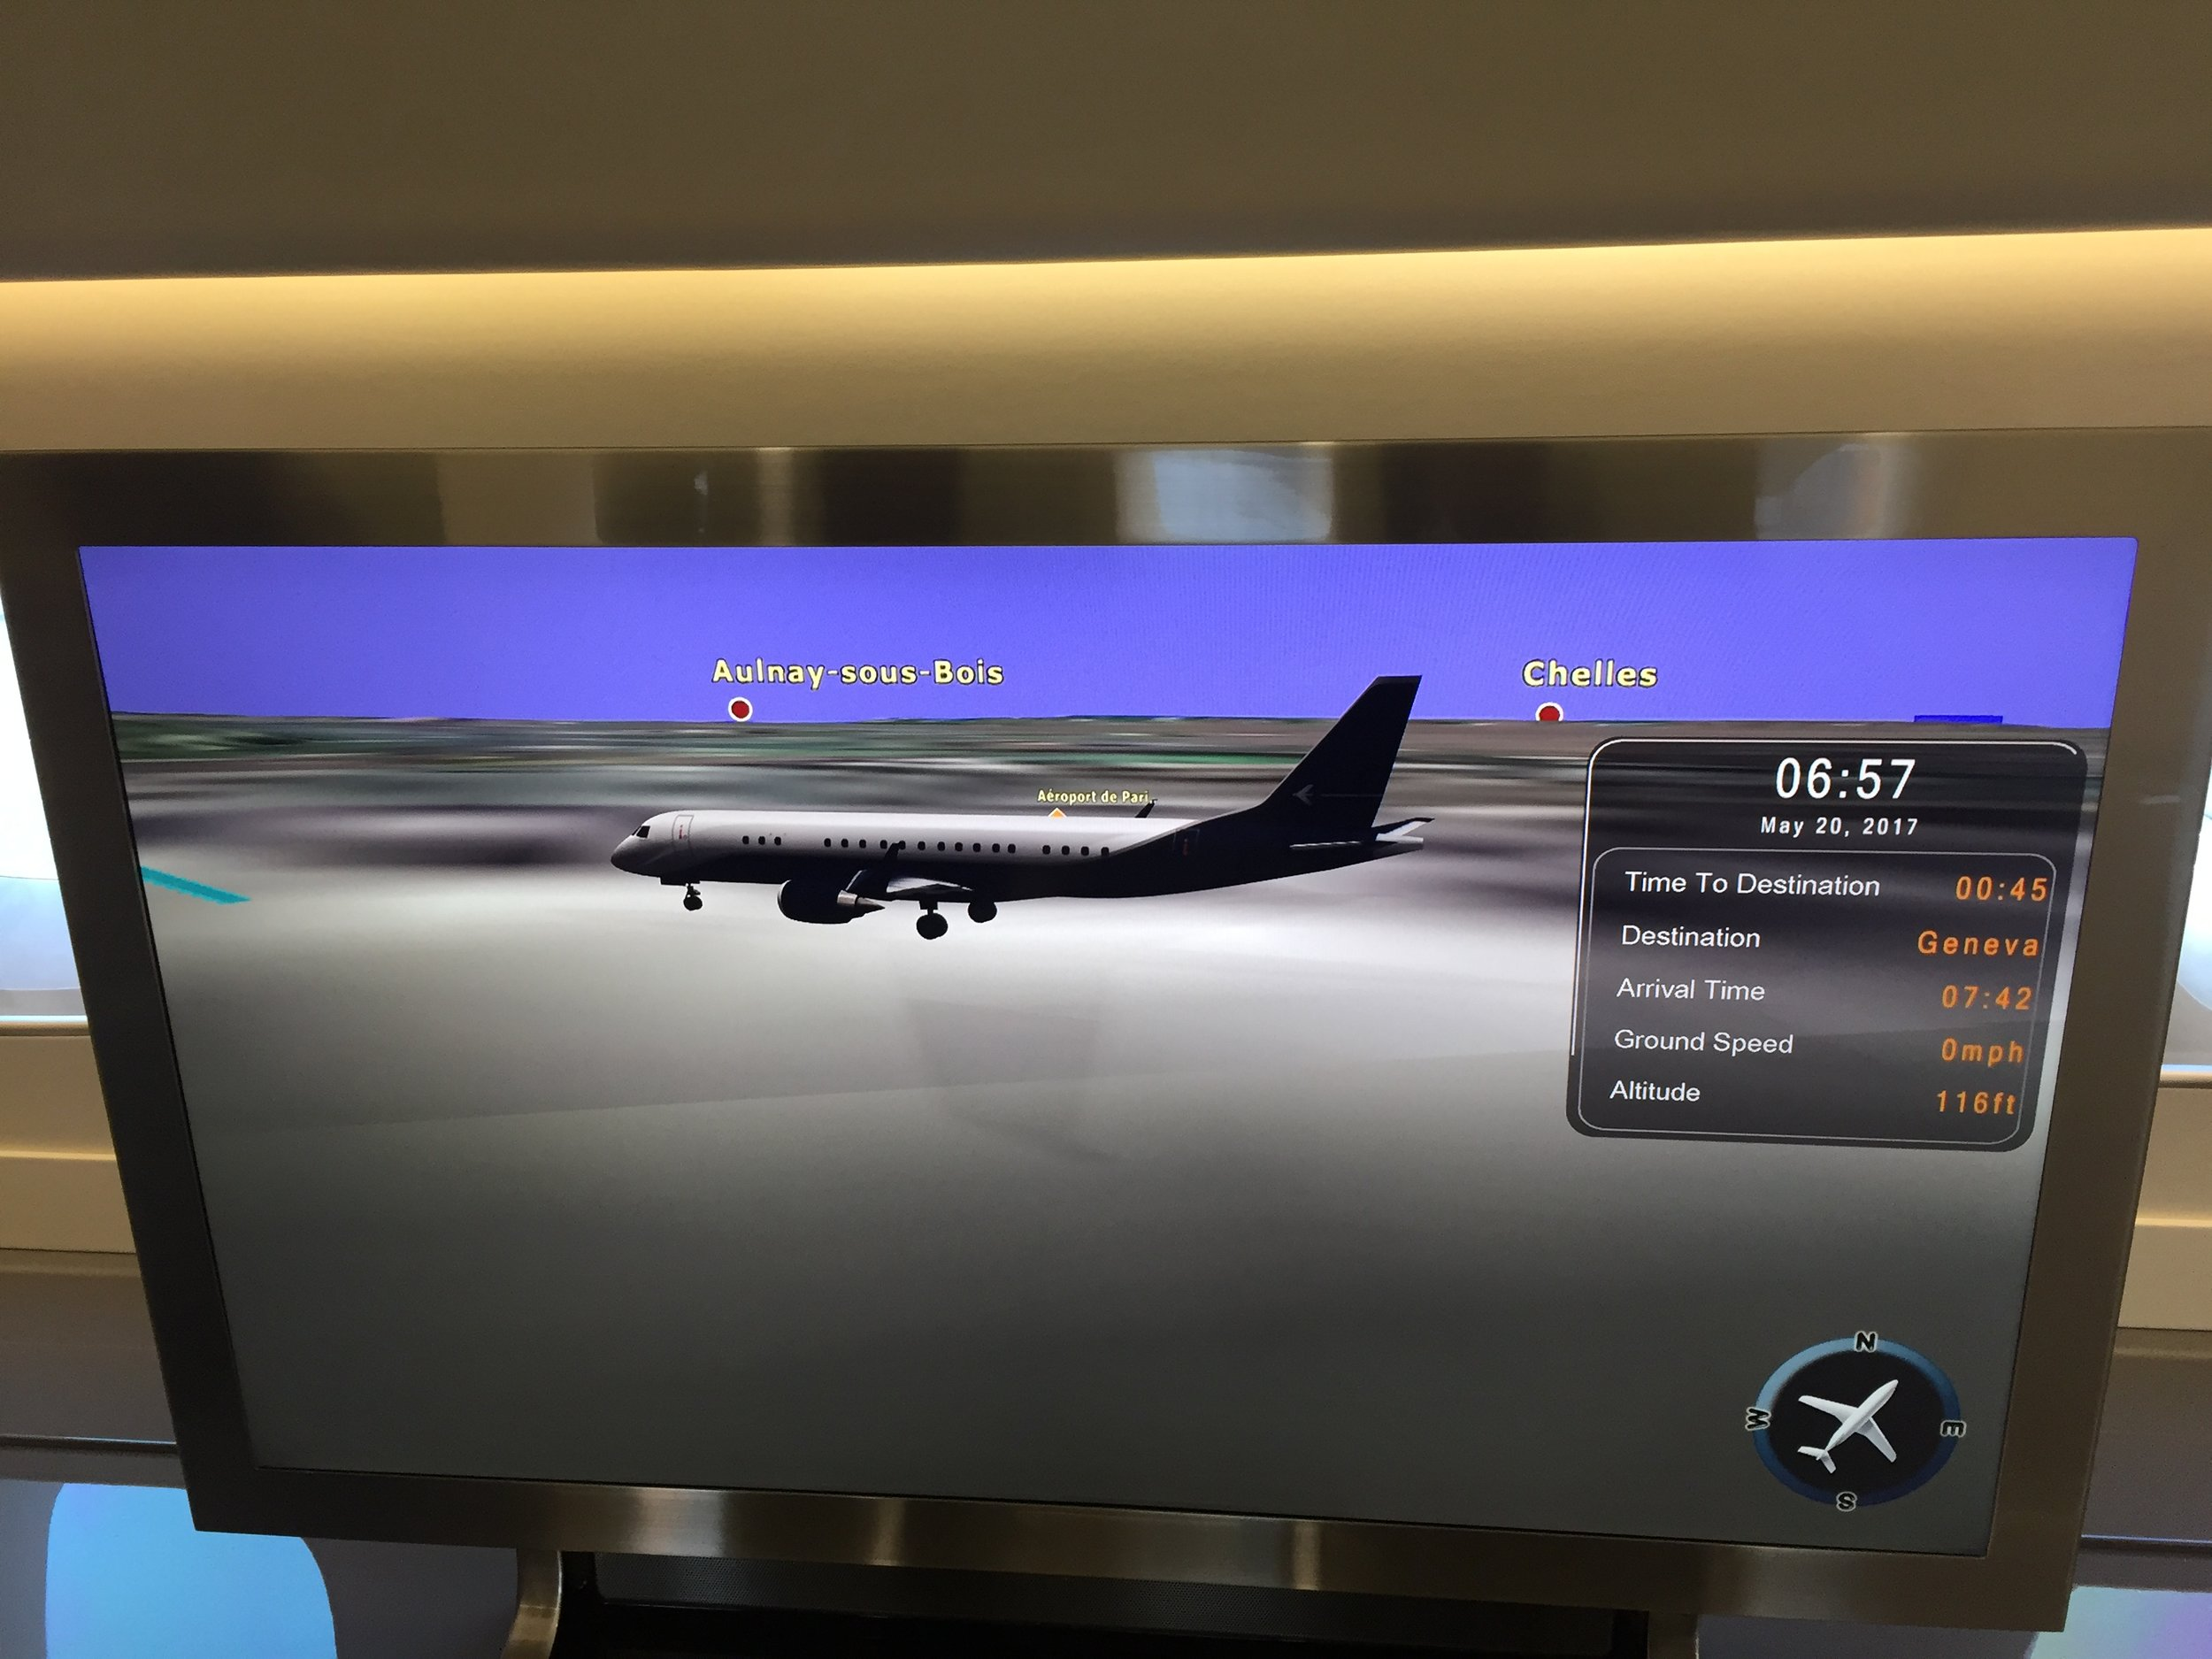 The flight tracking map. You could watch it from the sofa